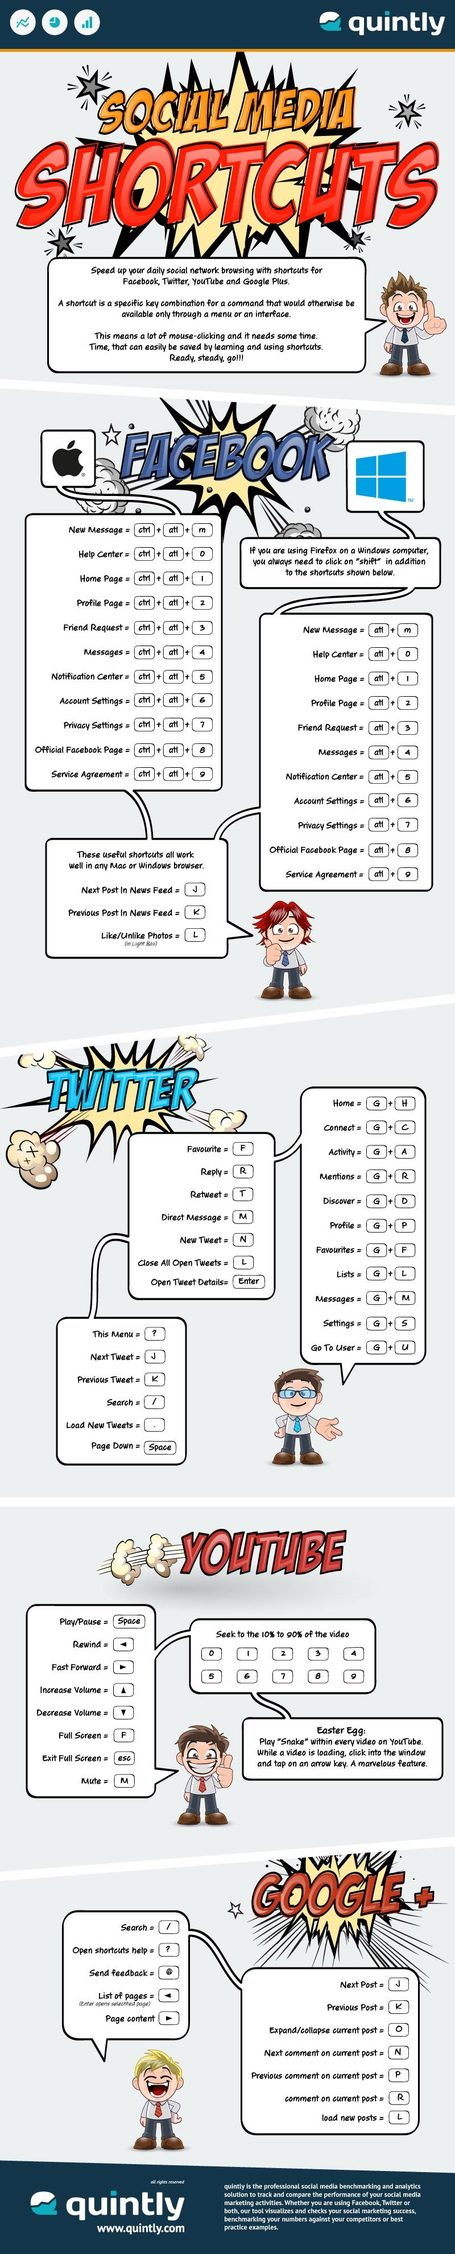 Infographic: Keyboard shortcuts for Facebook, Twitter, YouTube and G+ | Social Media (network, technology, blog, community, virtual reality, etc...) | Scoop.it